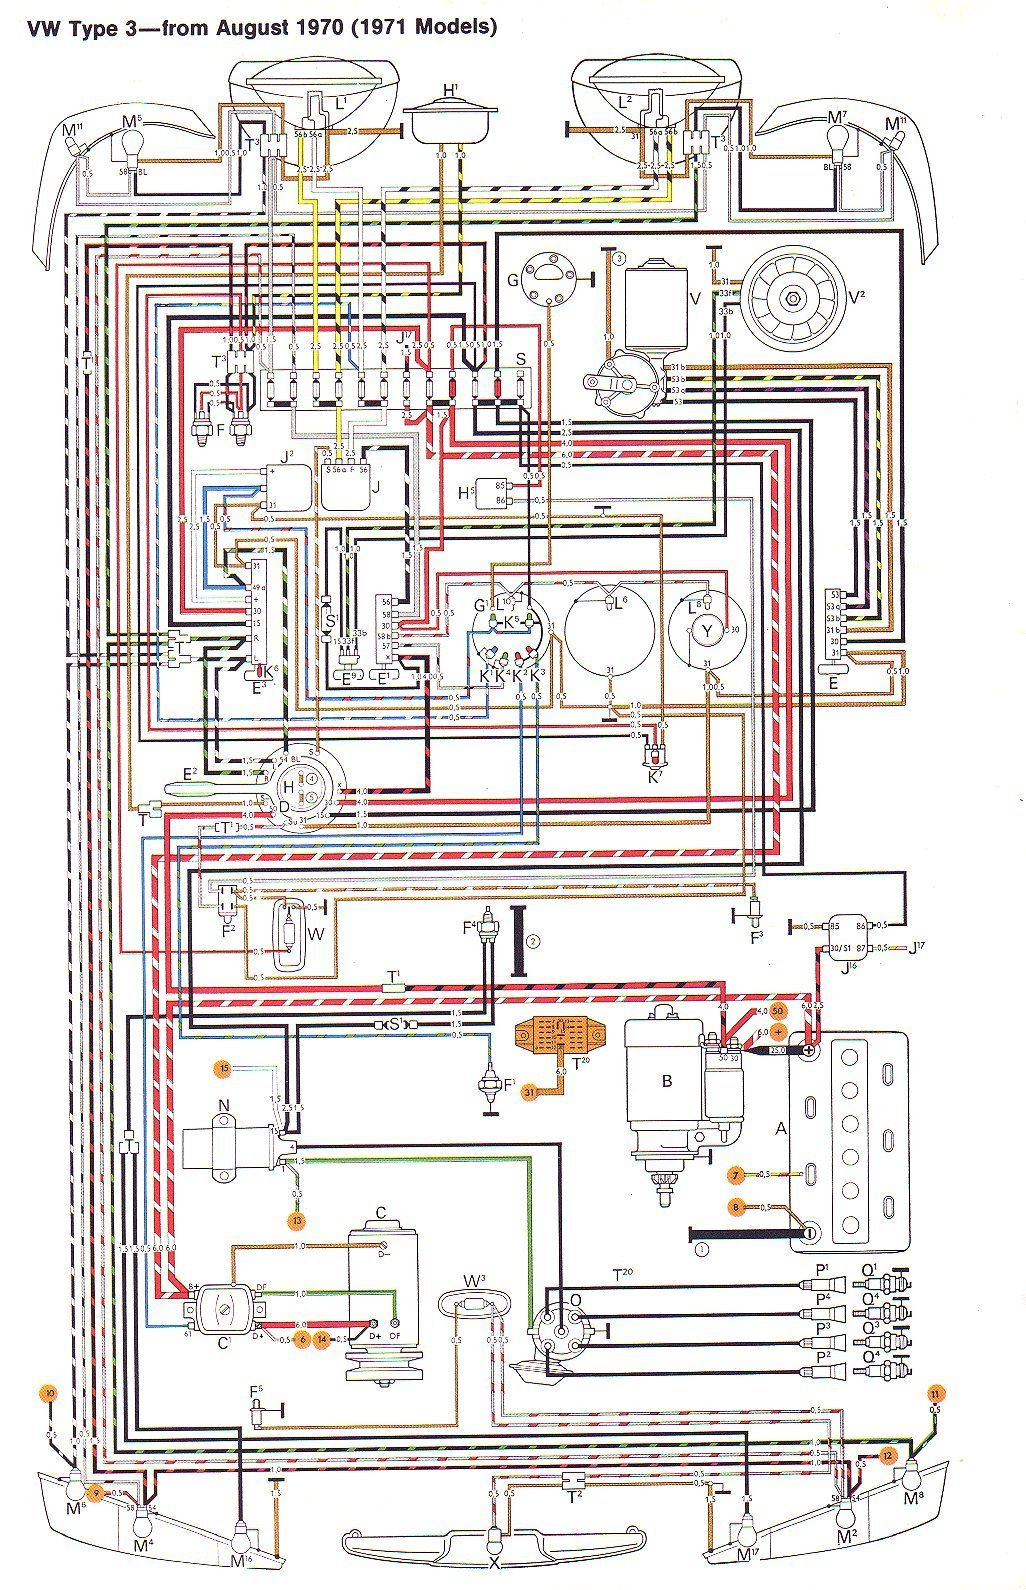 Peachy 71 Beetle Wiring Diagram Free Picture Schematic Wiring Diagram Data Zipur Mohammedshrine Wiring Diagrams Zipurmohammedshrineorg